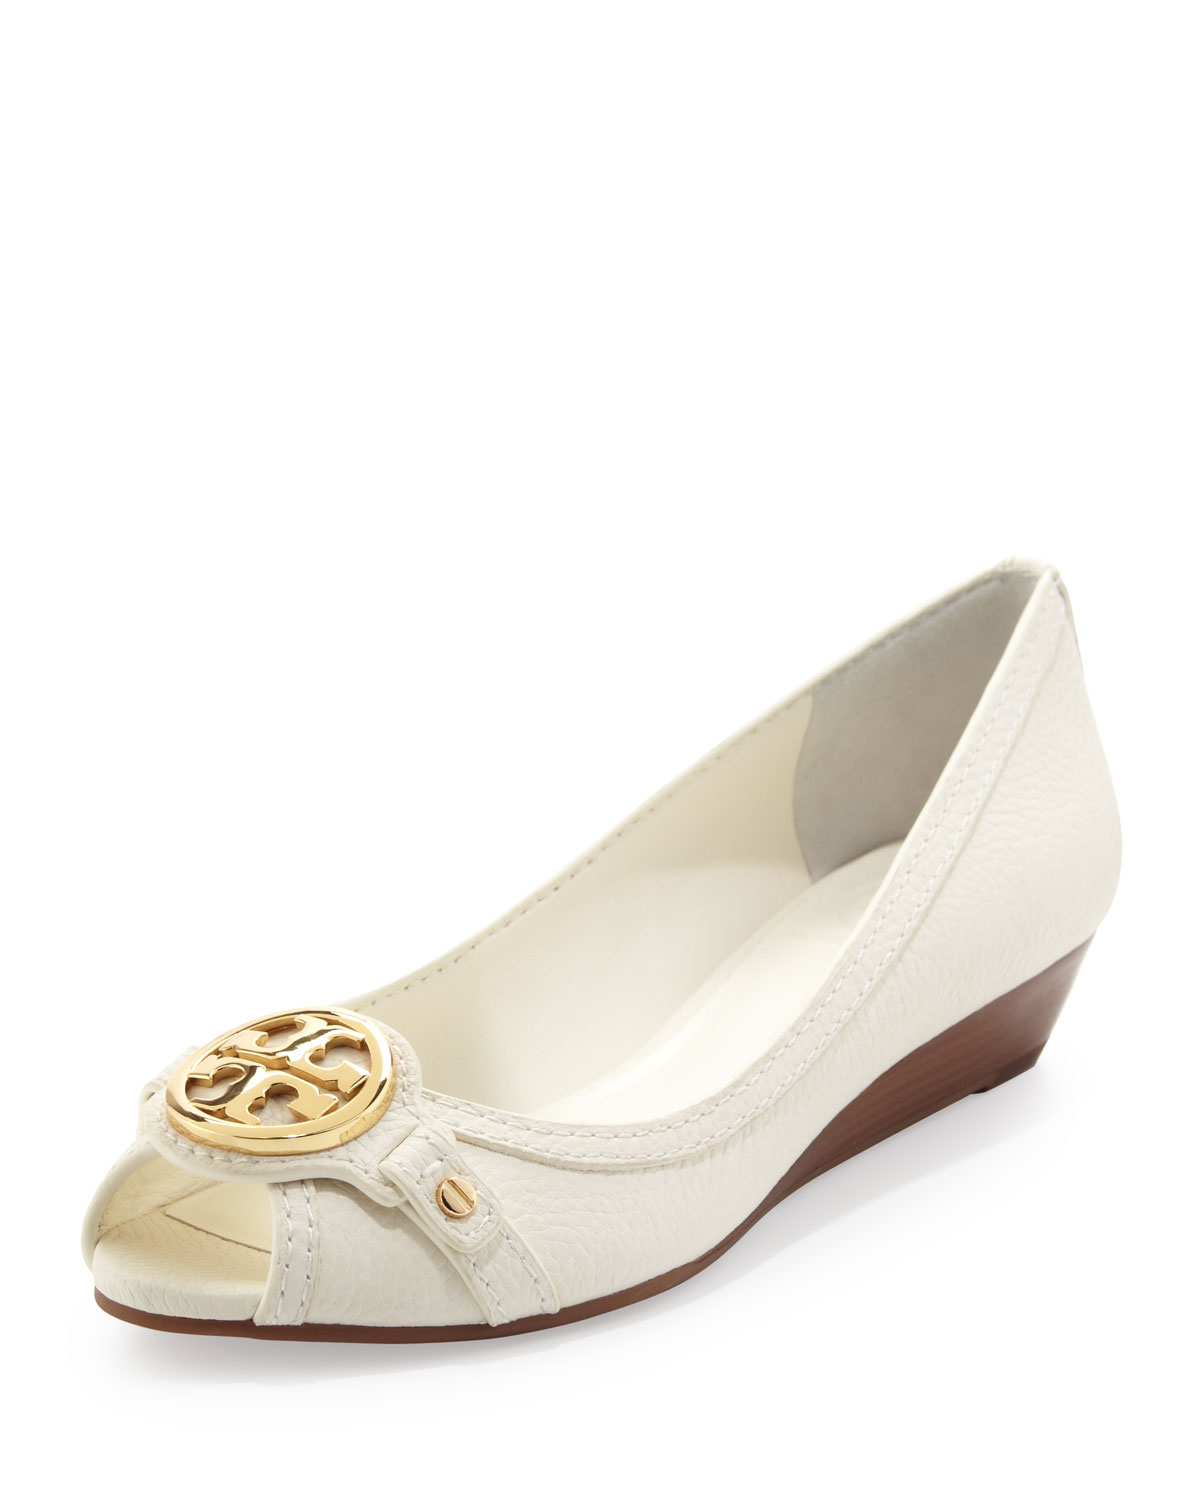 Lyst - Tory Burch Leticia Peeptoe Low Wedge Ivory in White 1bfbe40e847f